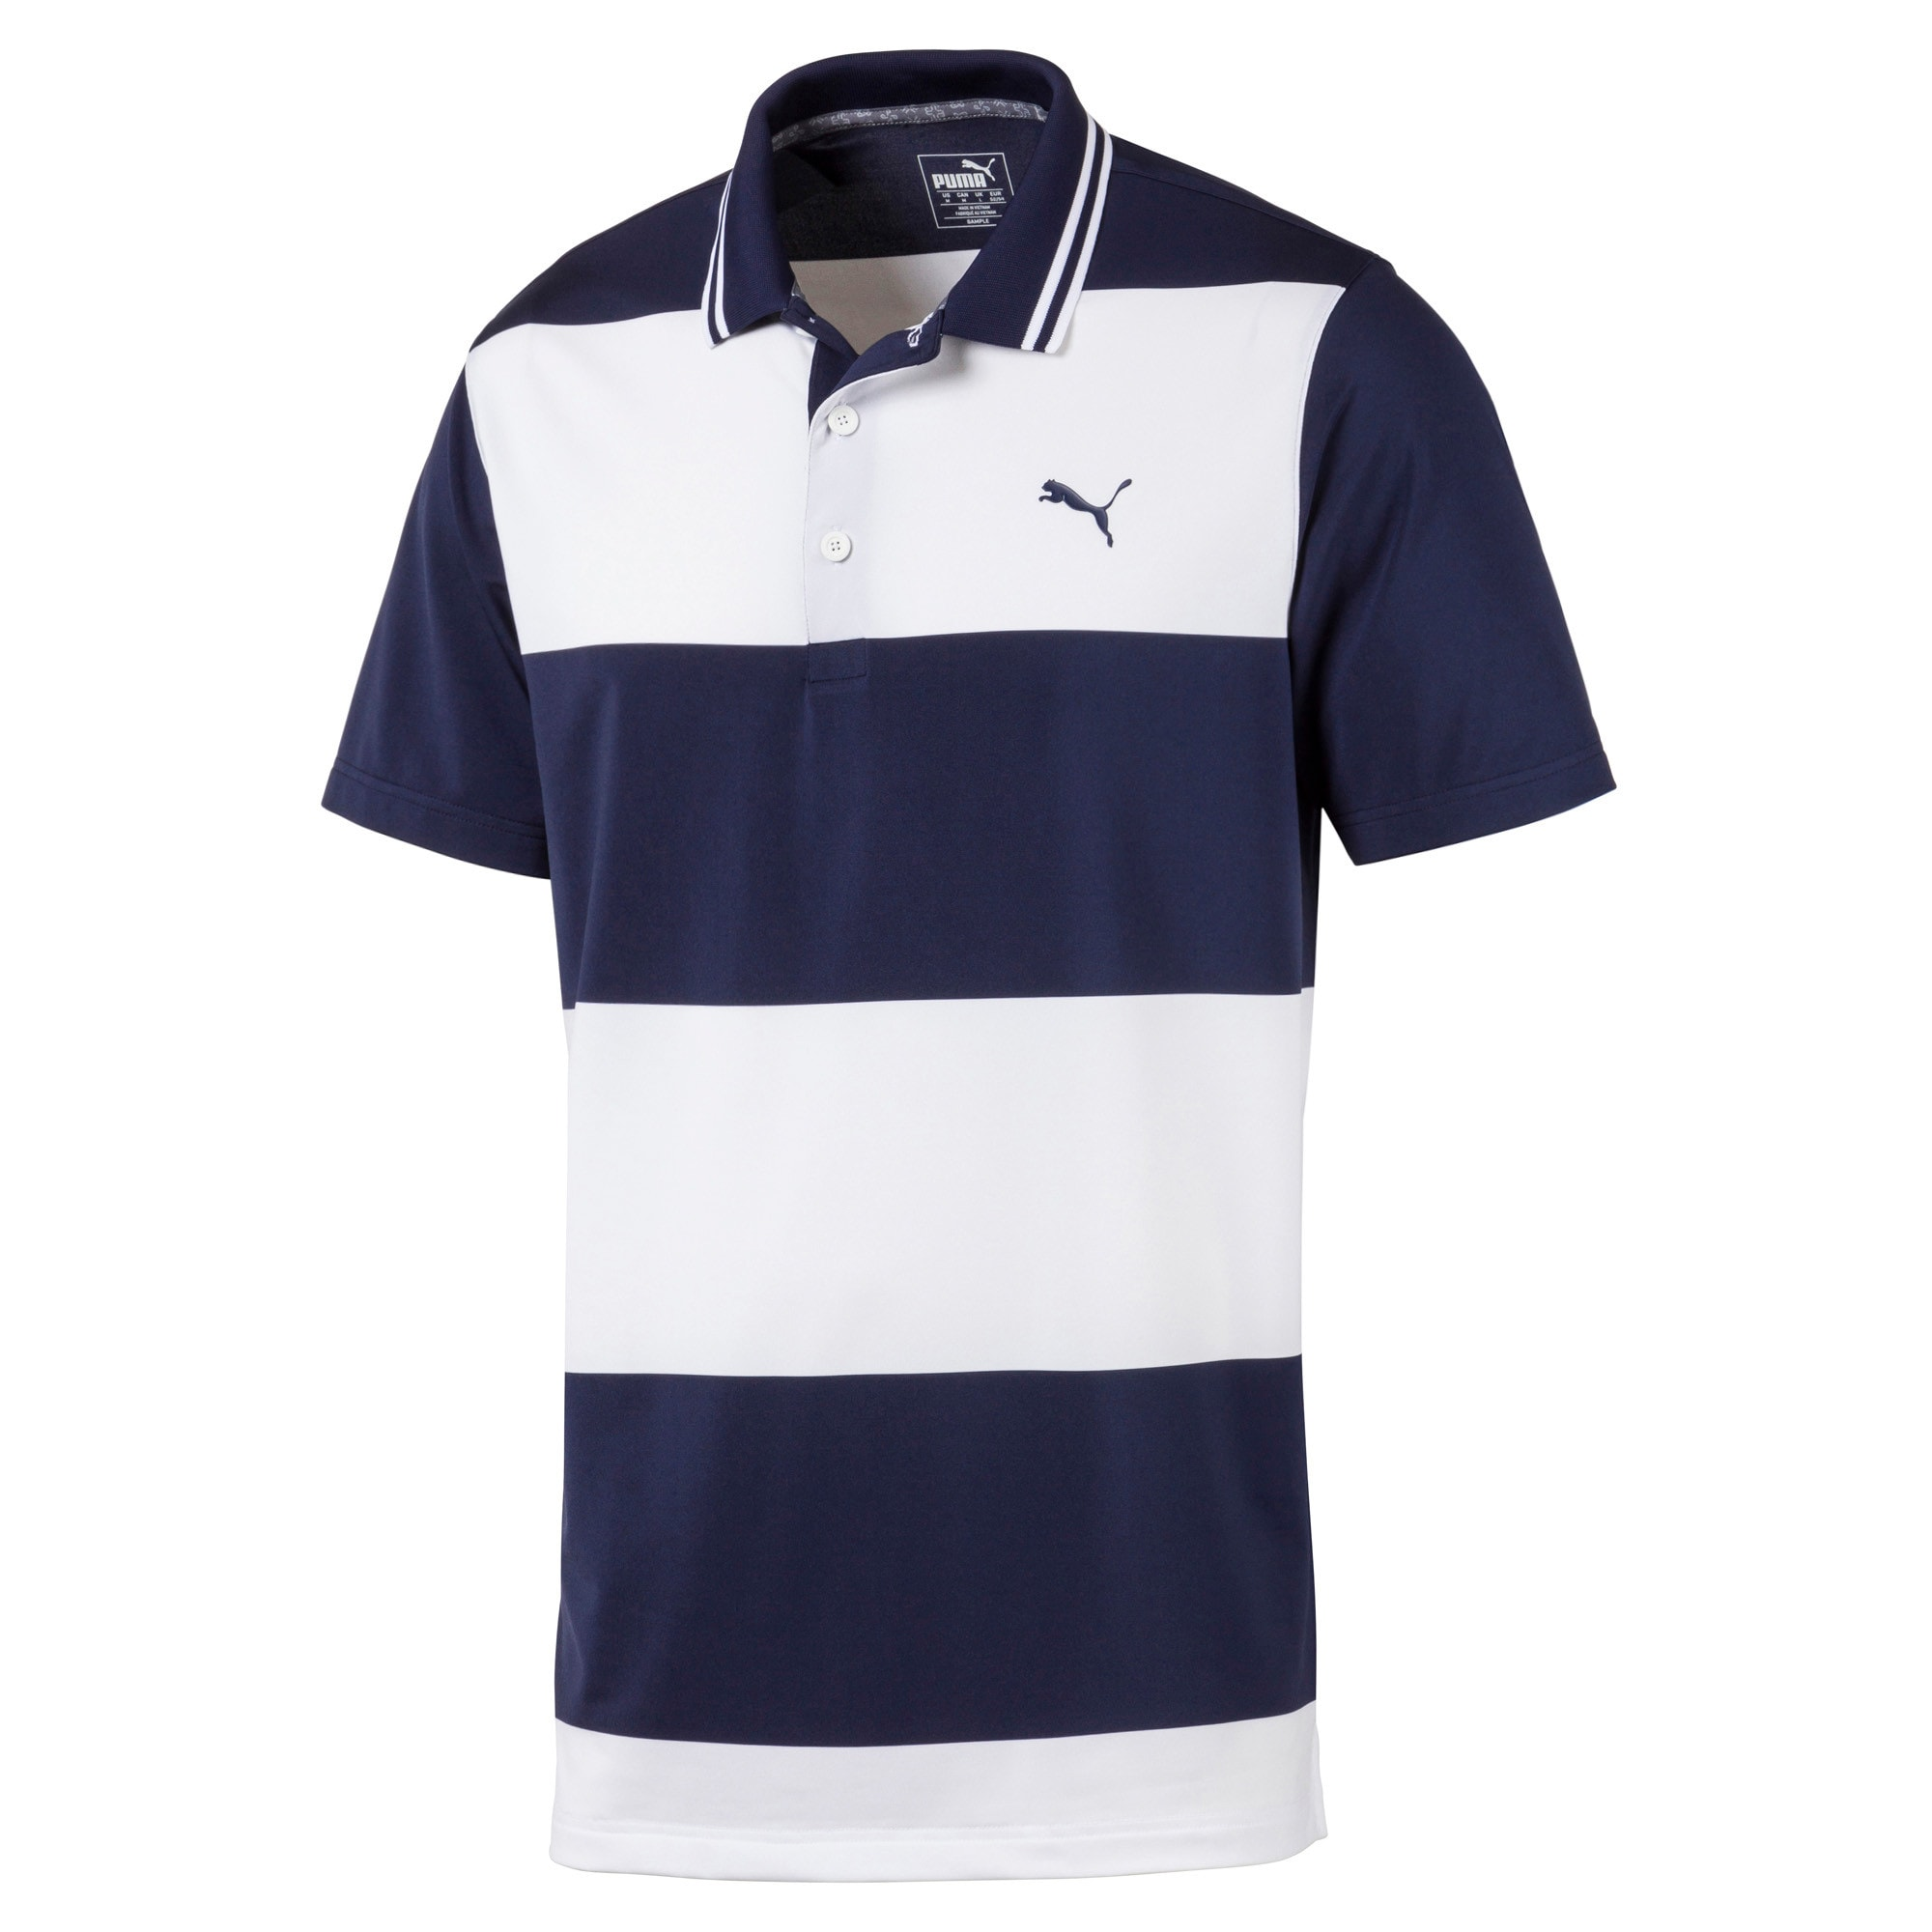 Thumbnail 4 of Rugby Herren Golf Polo, Peacoat-Bright White, medium